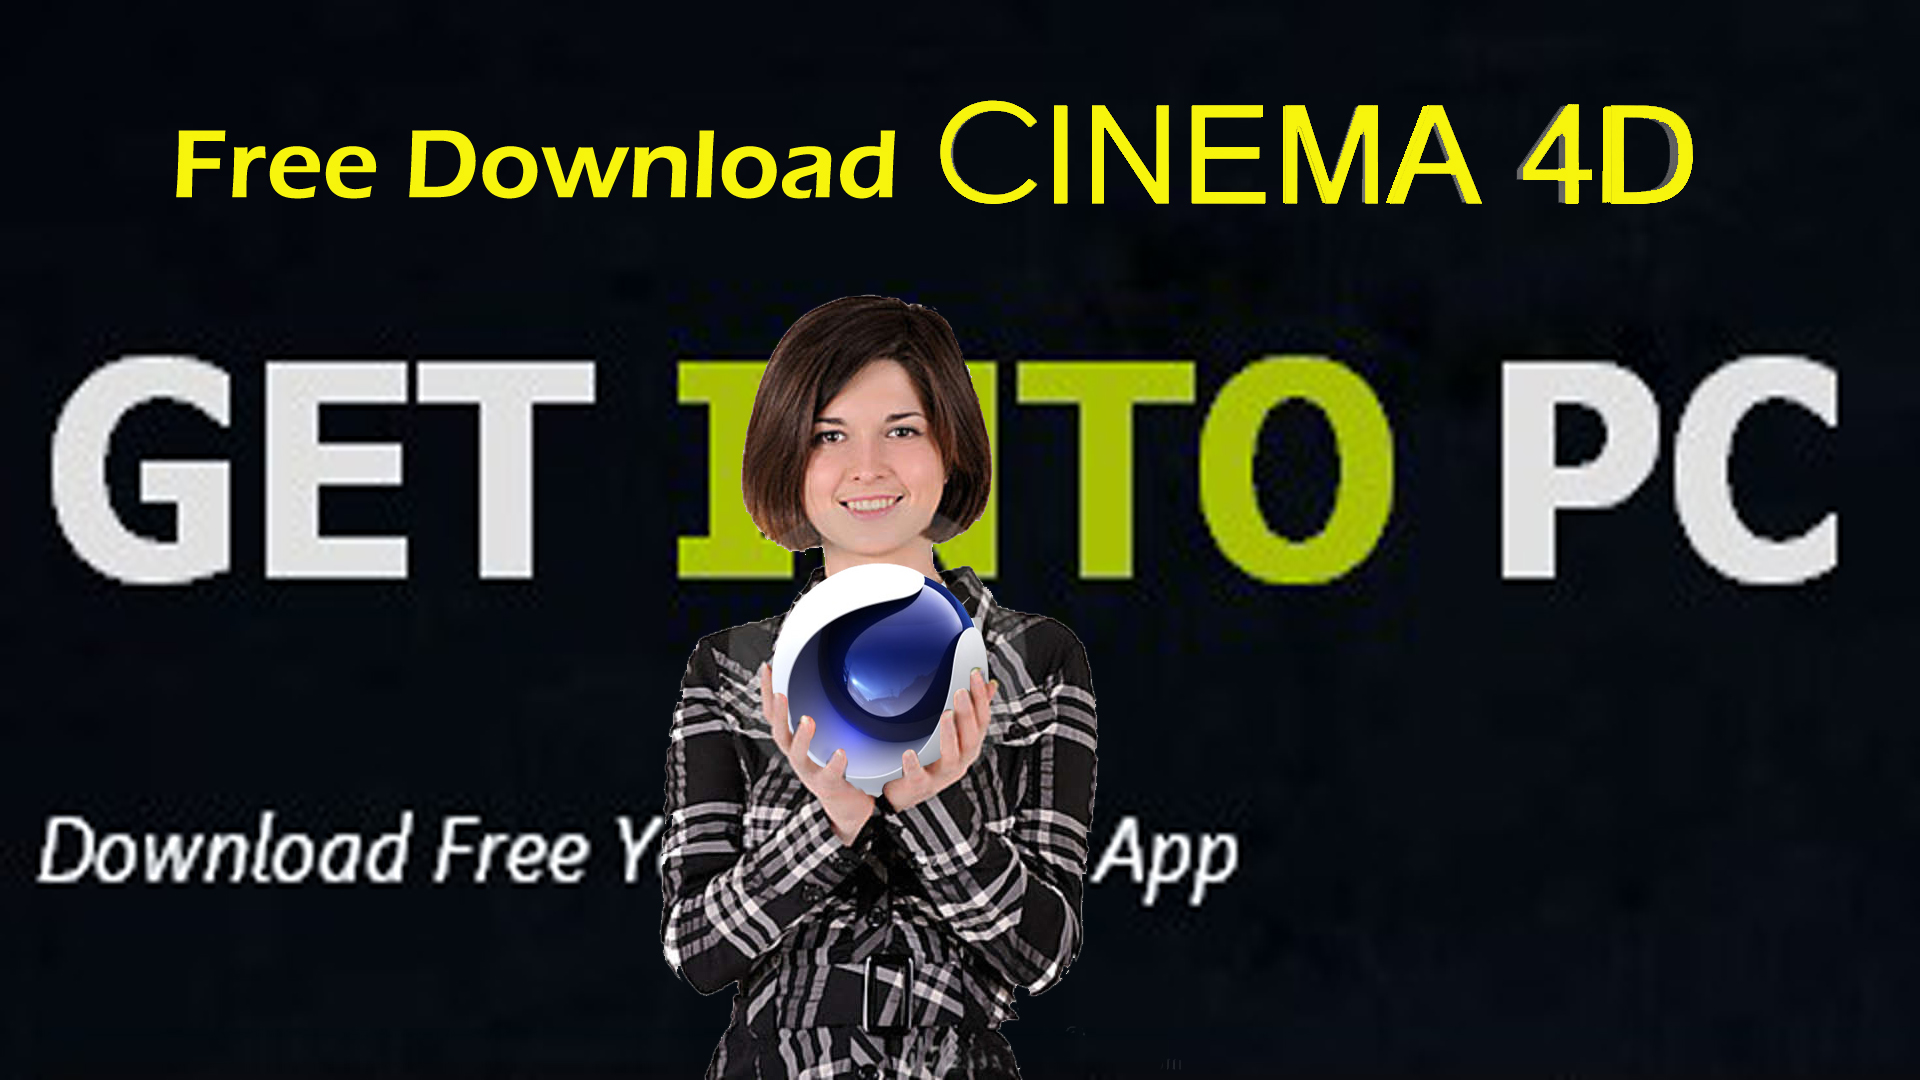 Download Cinema 4D Free